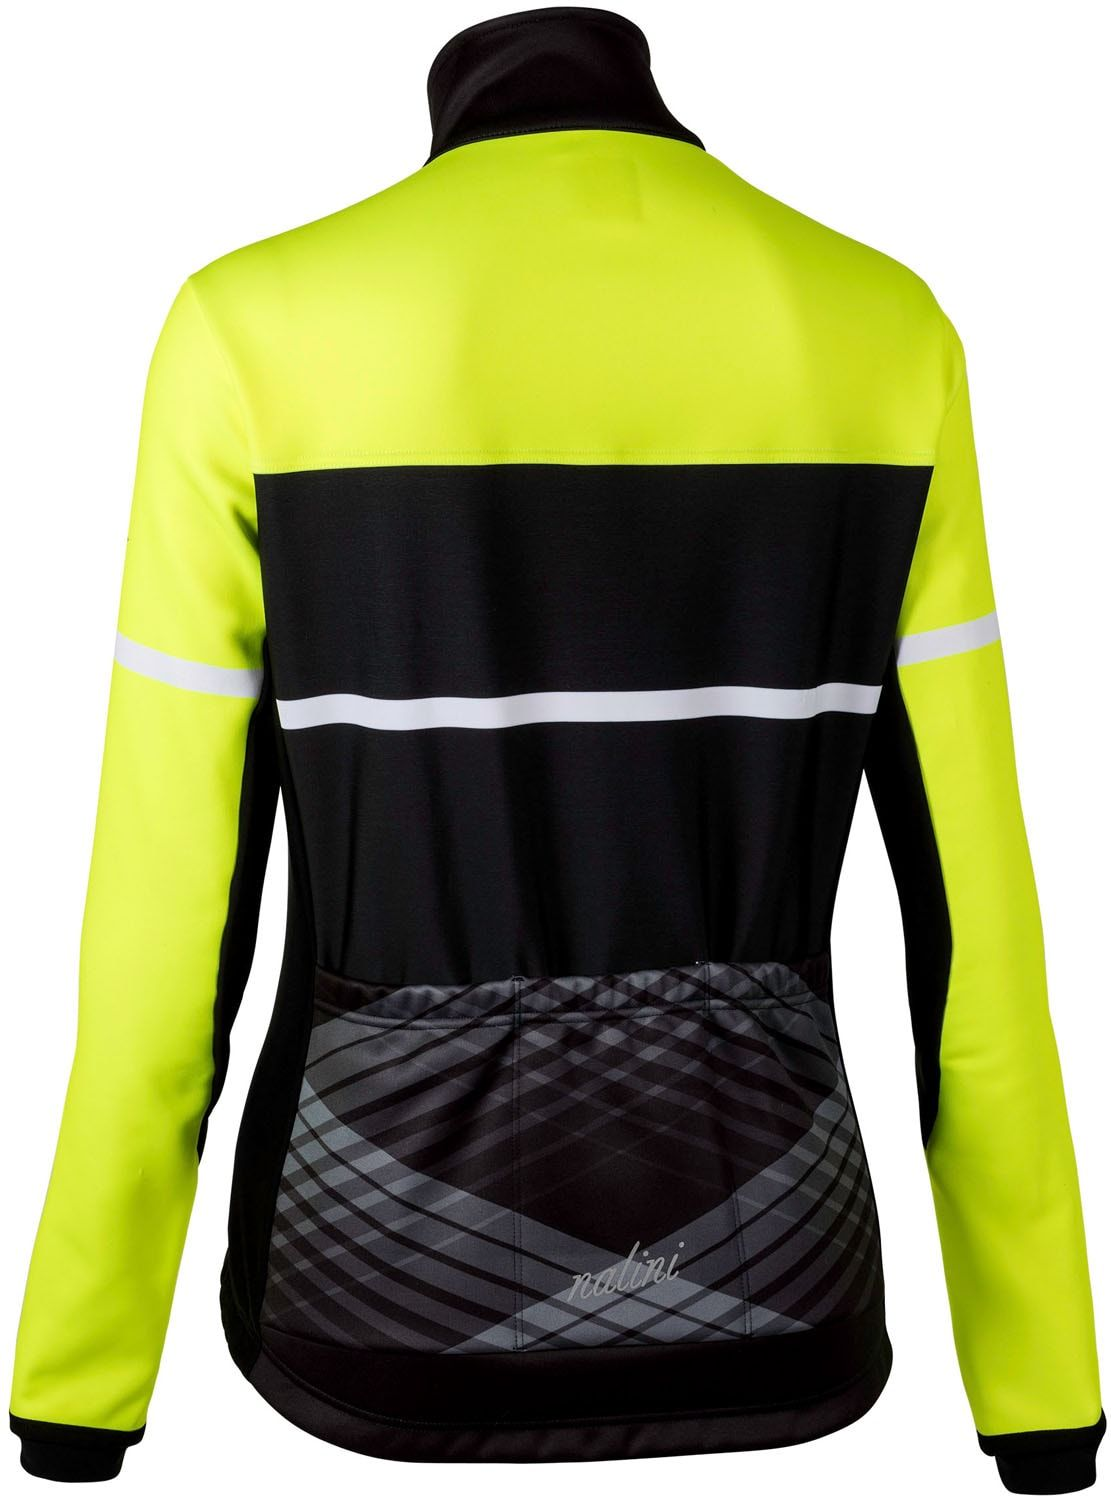 a7c0658c0 Nalini PRO WS Lady Jkt womens winter cycling jacket black yellow (I18-4050.  Previous